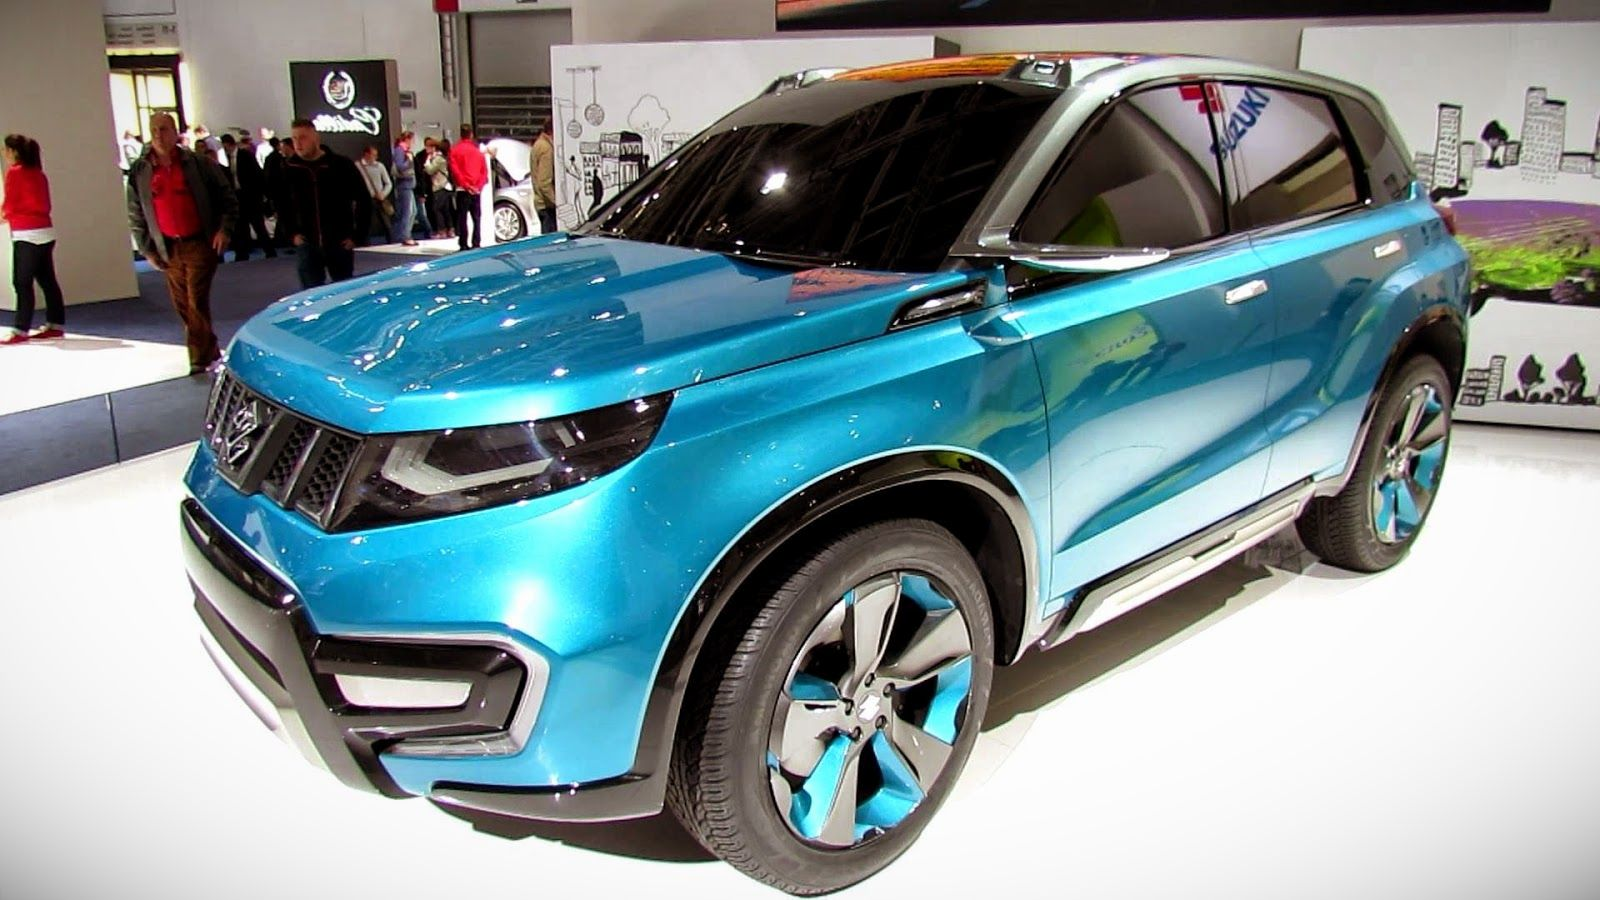 2018 suzuki grand vitara price new suv price. Black Bedroom Furniture Sets. Home Design Ideas